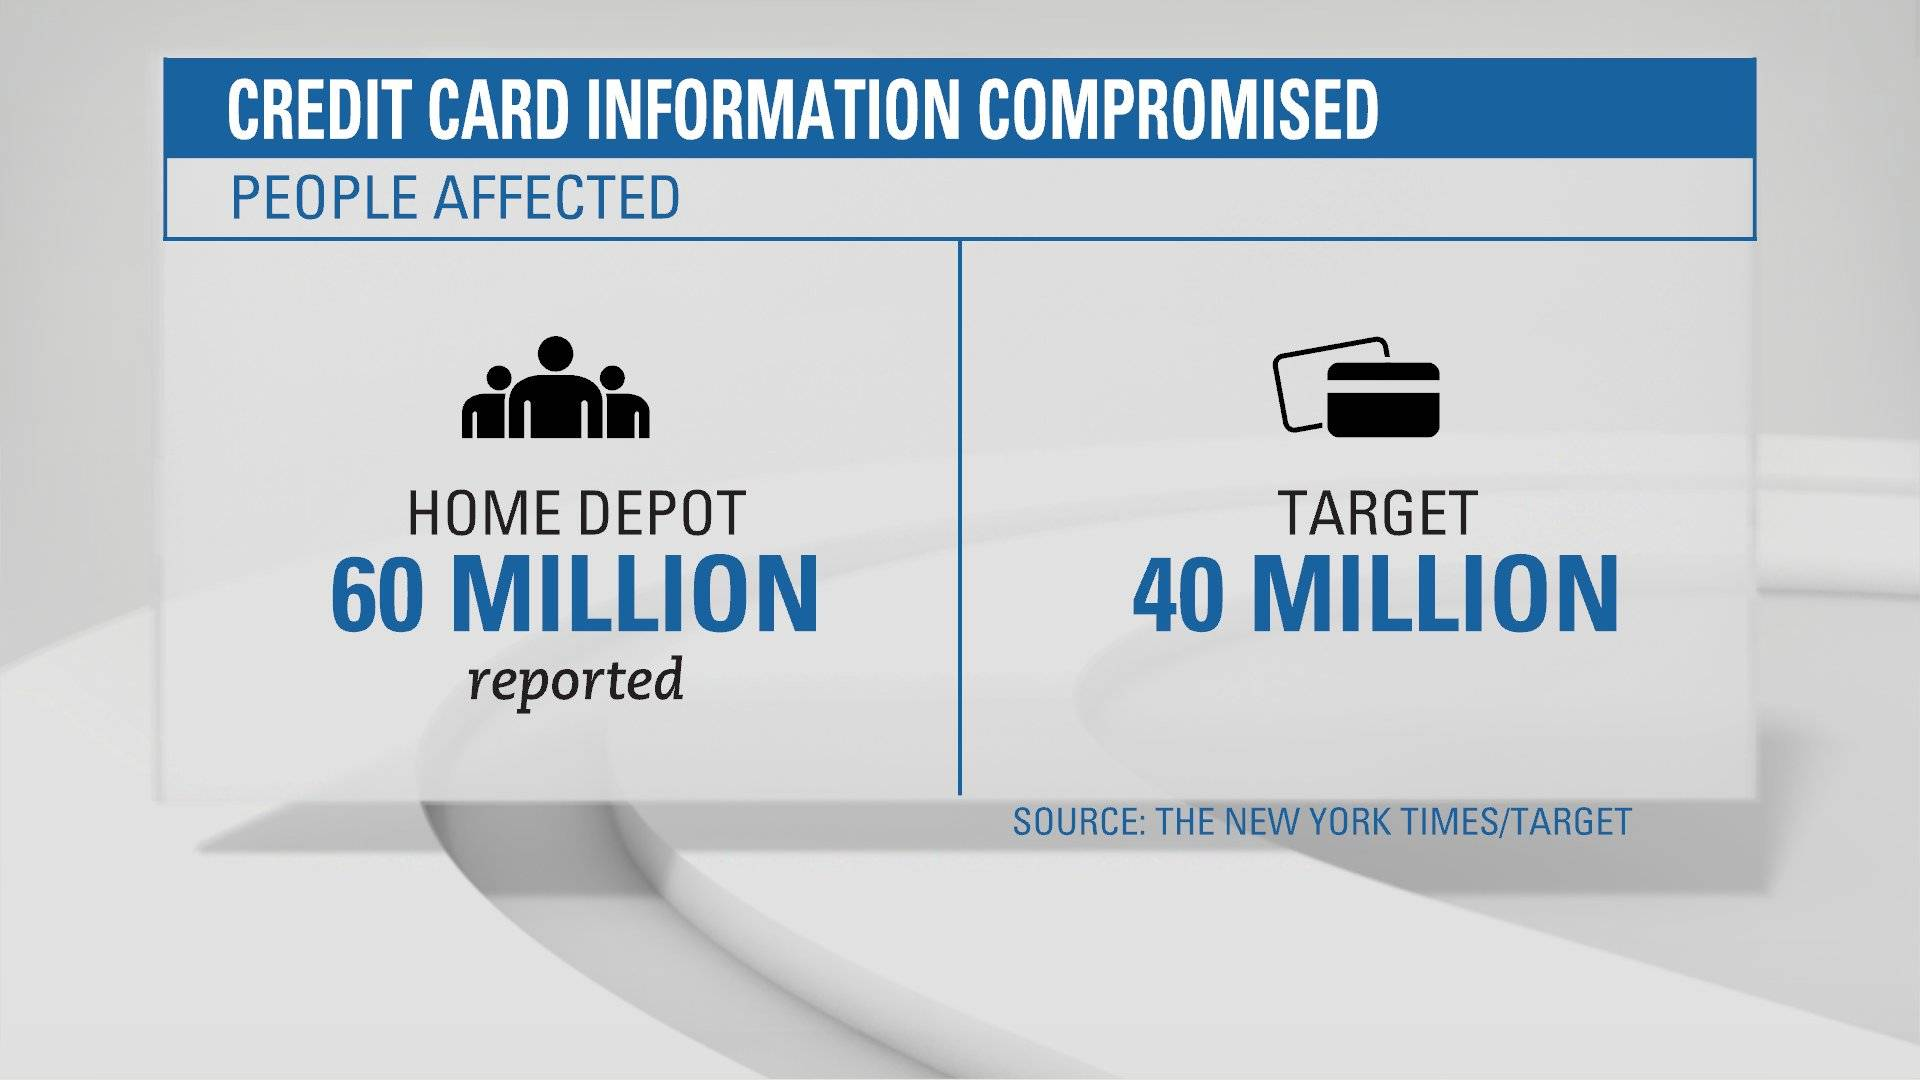 A reported 60 million people were affected by a recent credit card data breach at Home Depot. That's larger than the data breach at Target. It affected around 40 million people.